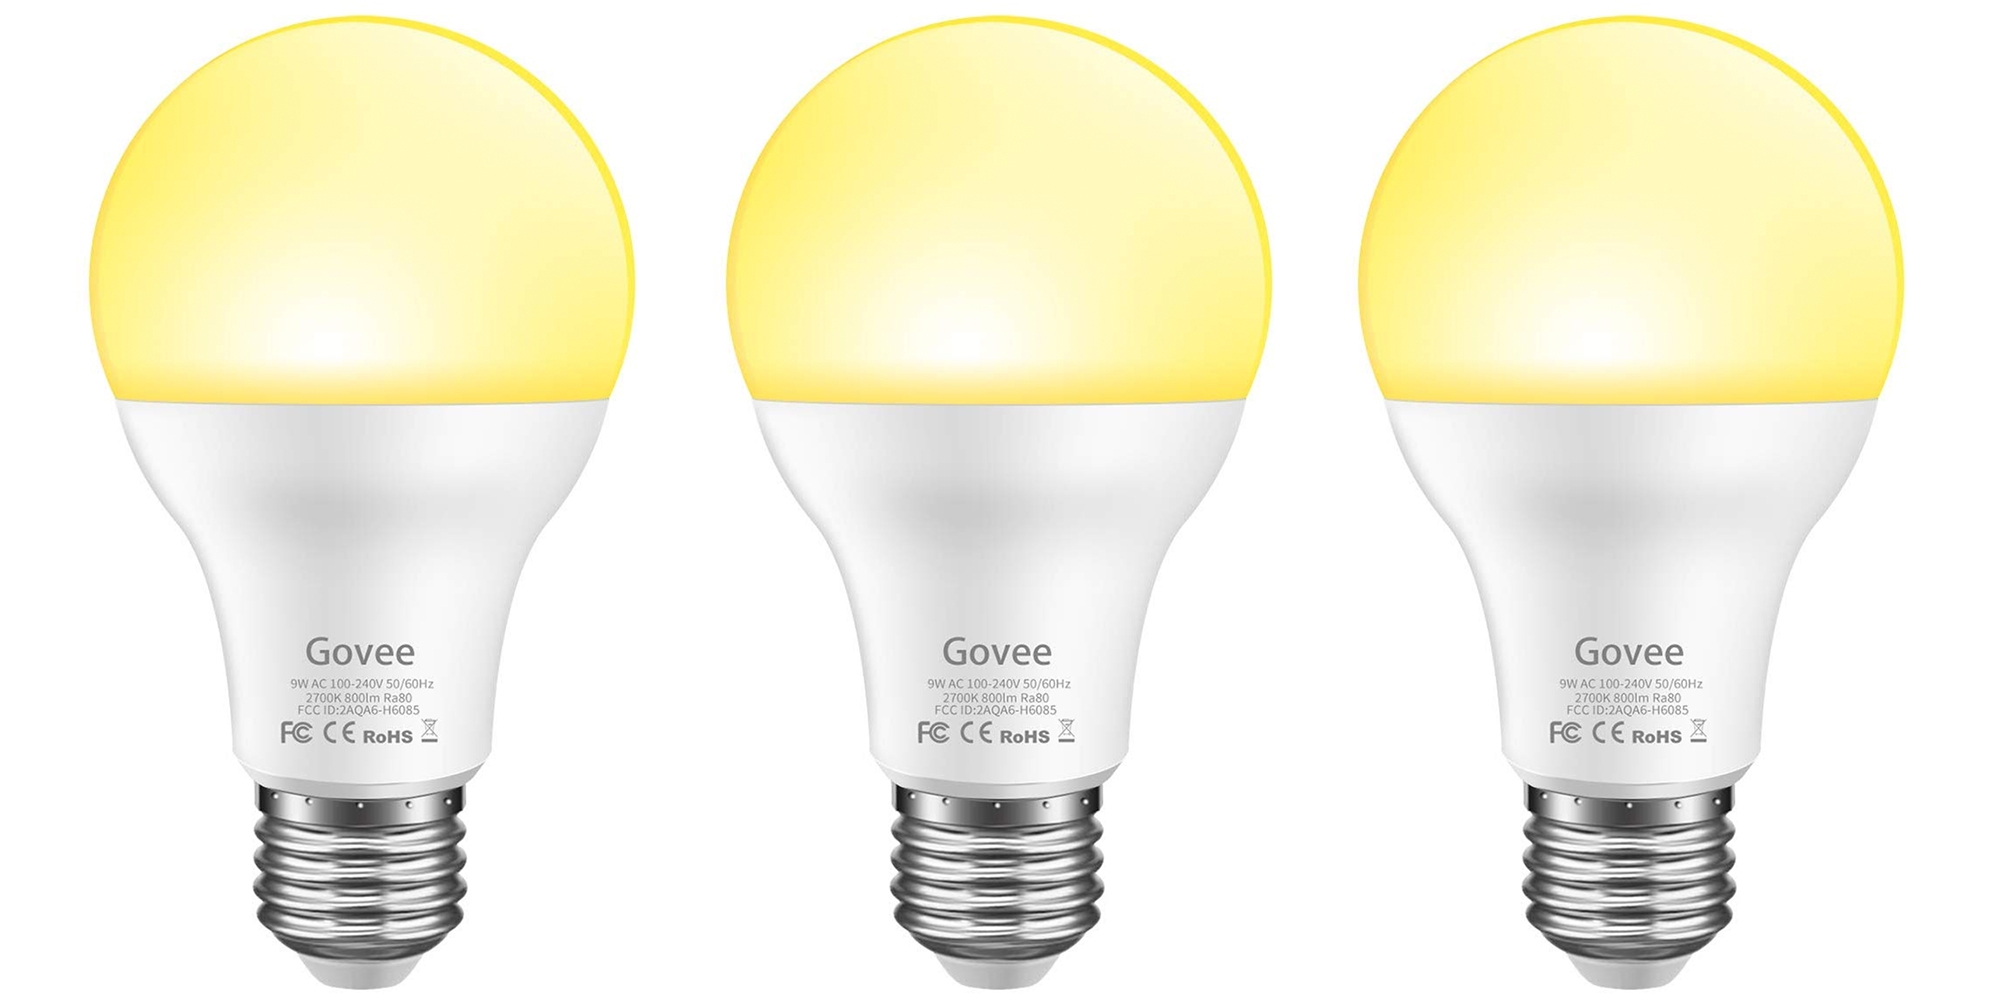 Smart Led Bulb Pick Up A Govee Smart Led Bulb For Just 8 More Electrek